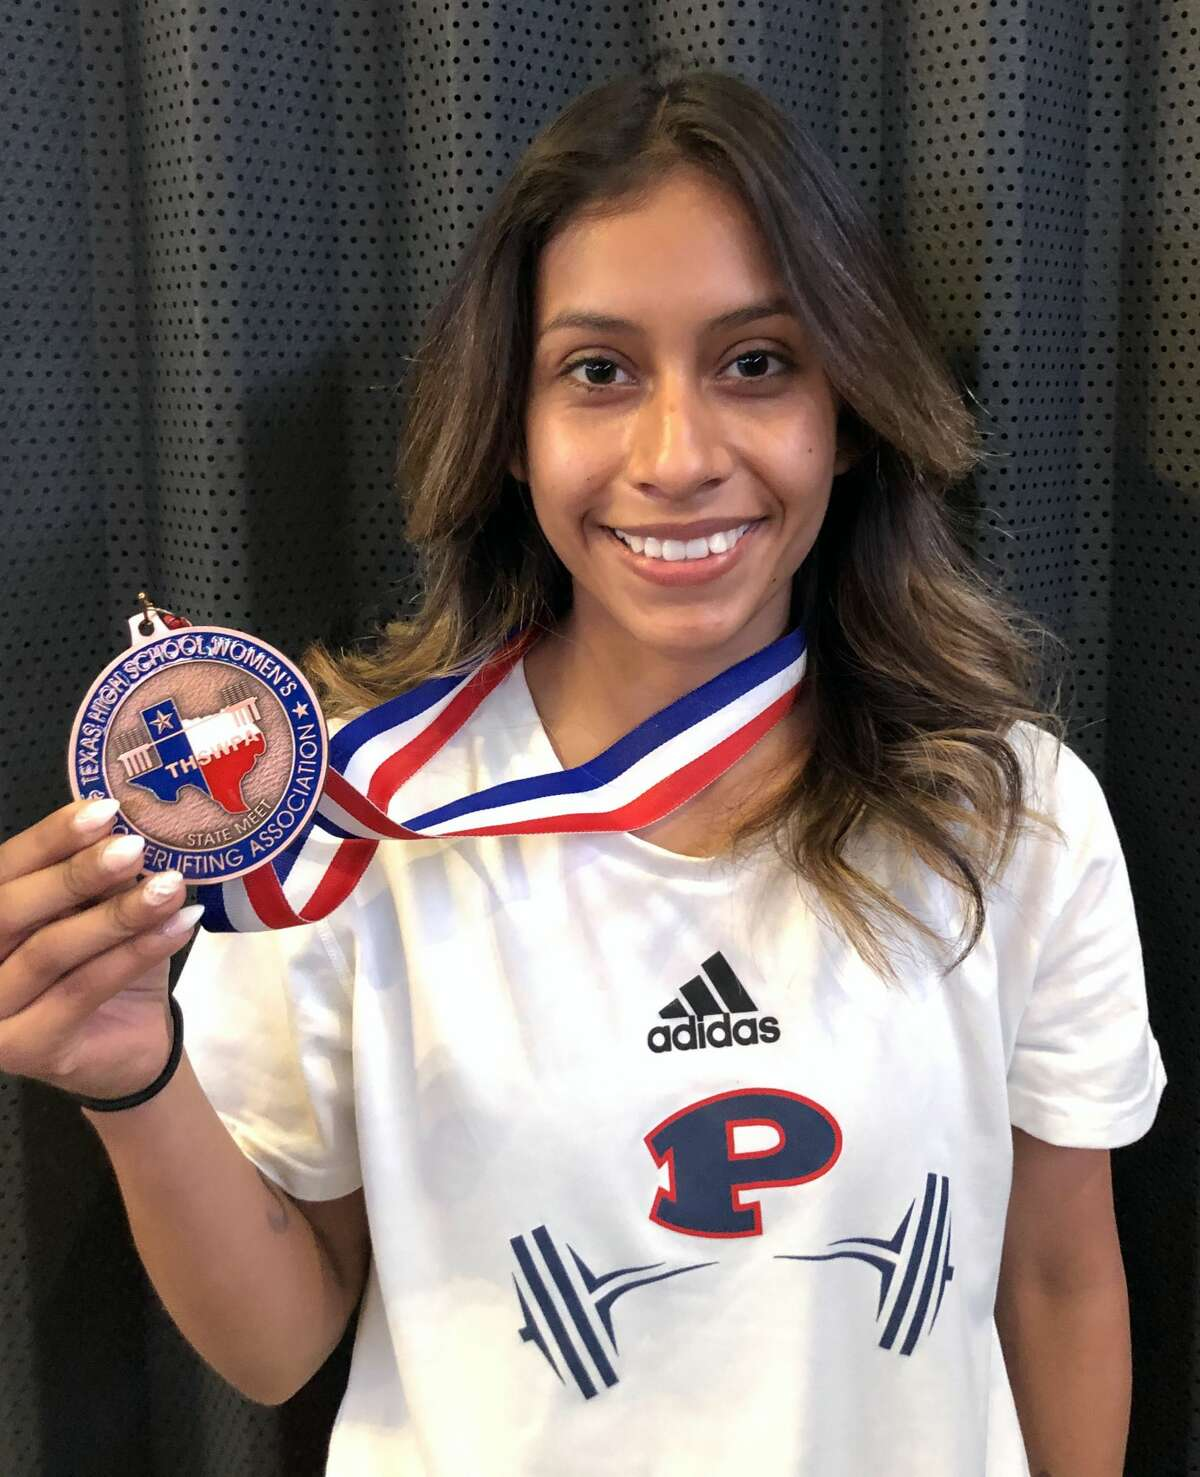 Claudia Ramirez finished fourth in the 97-pound weight class of the Texas High School State Women's Powerlifting Association state tournament over the weekend.